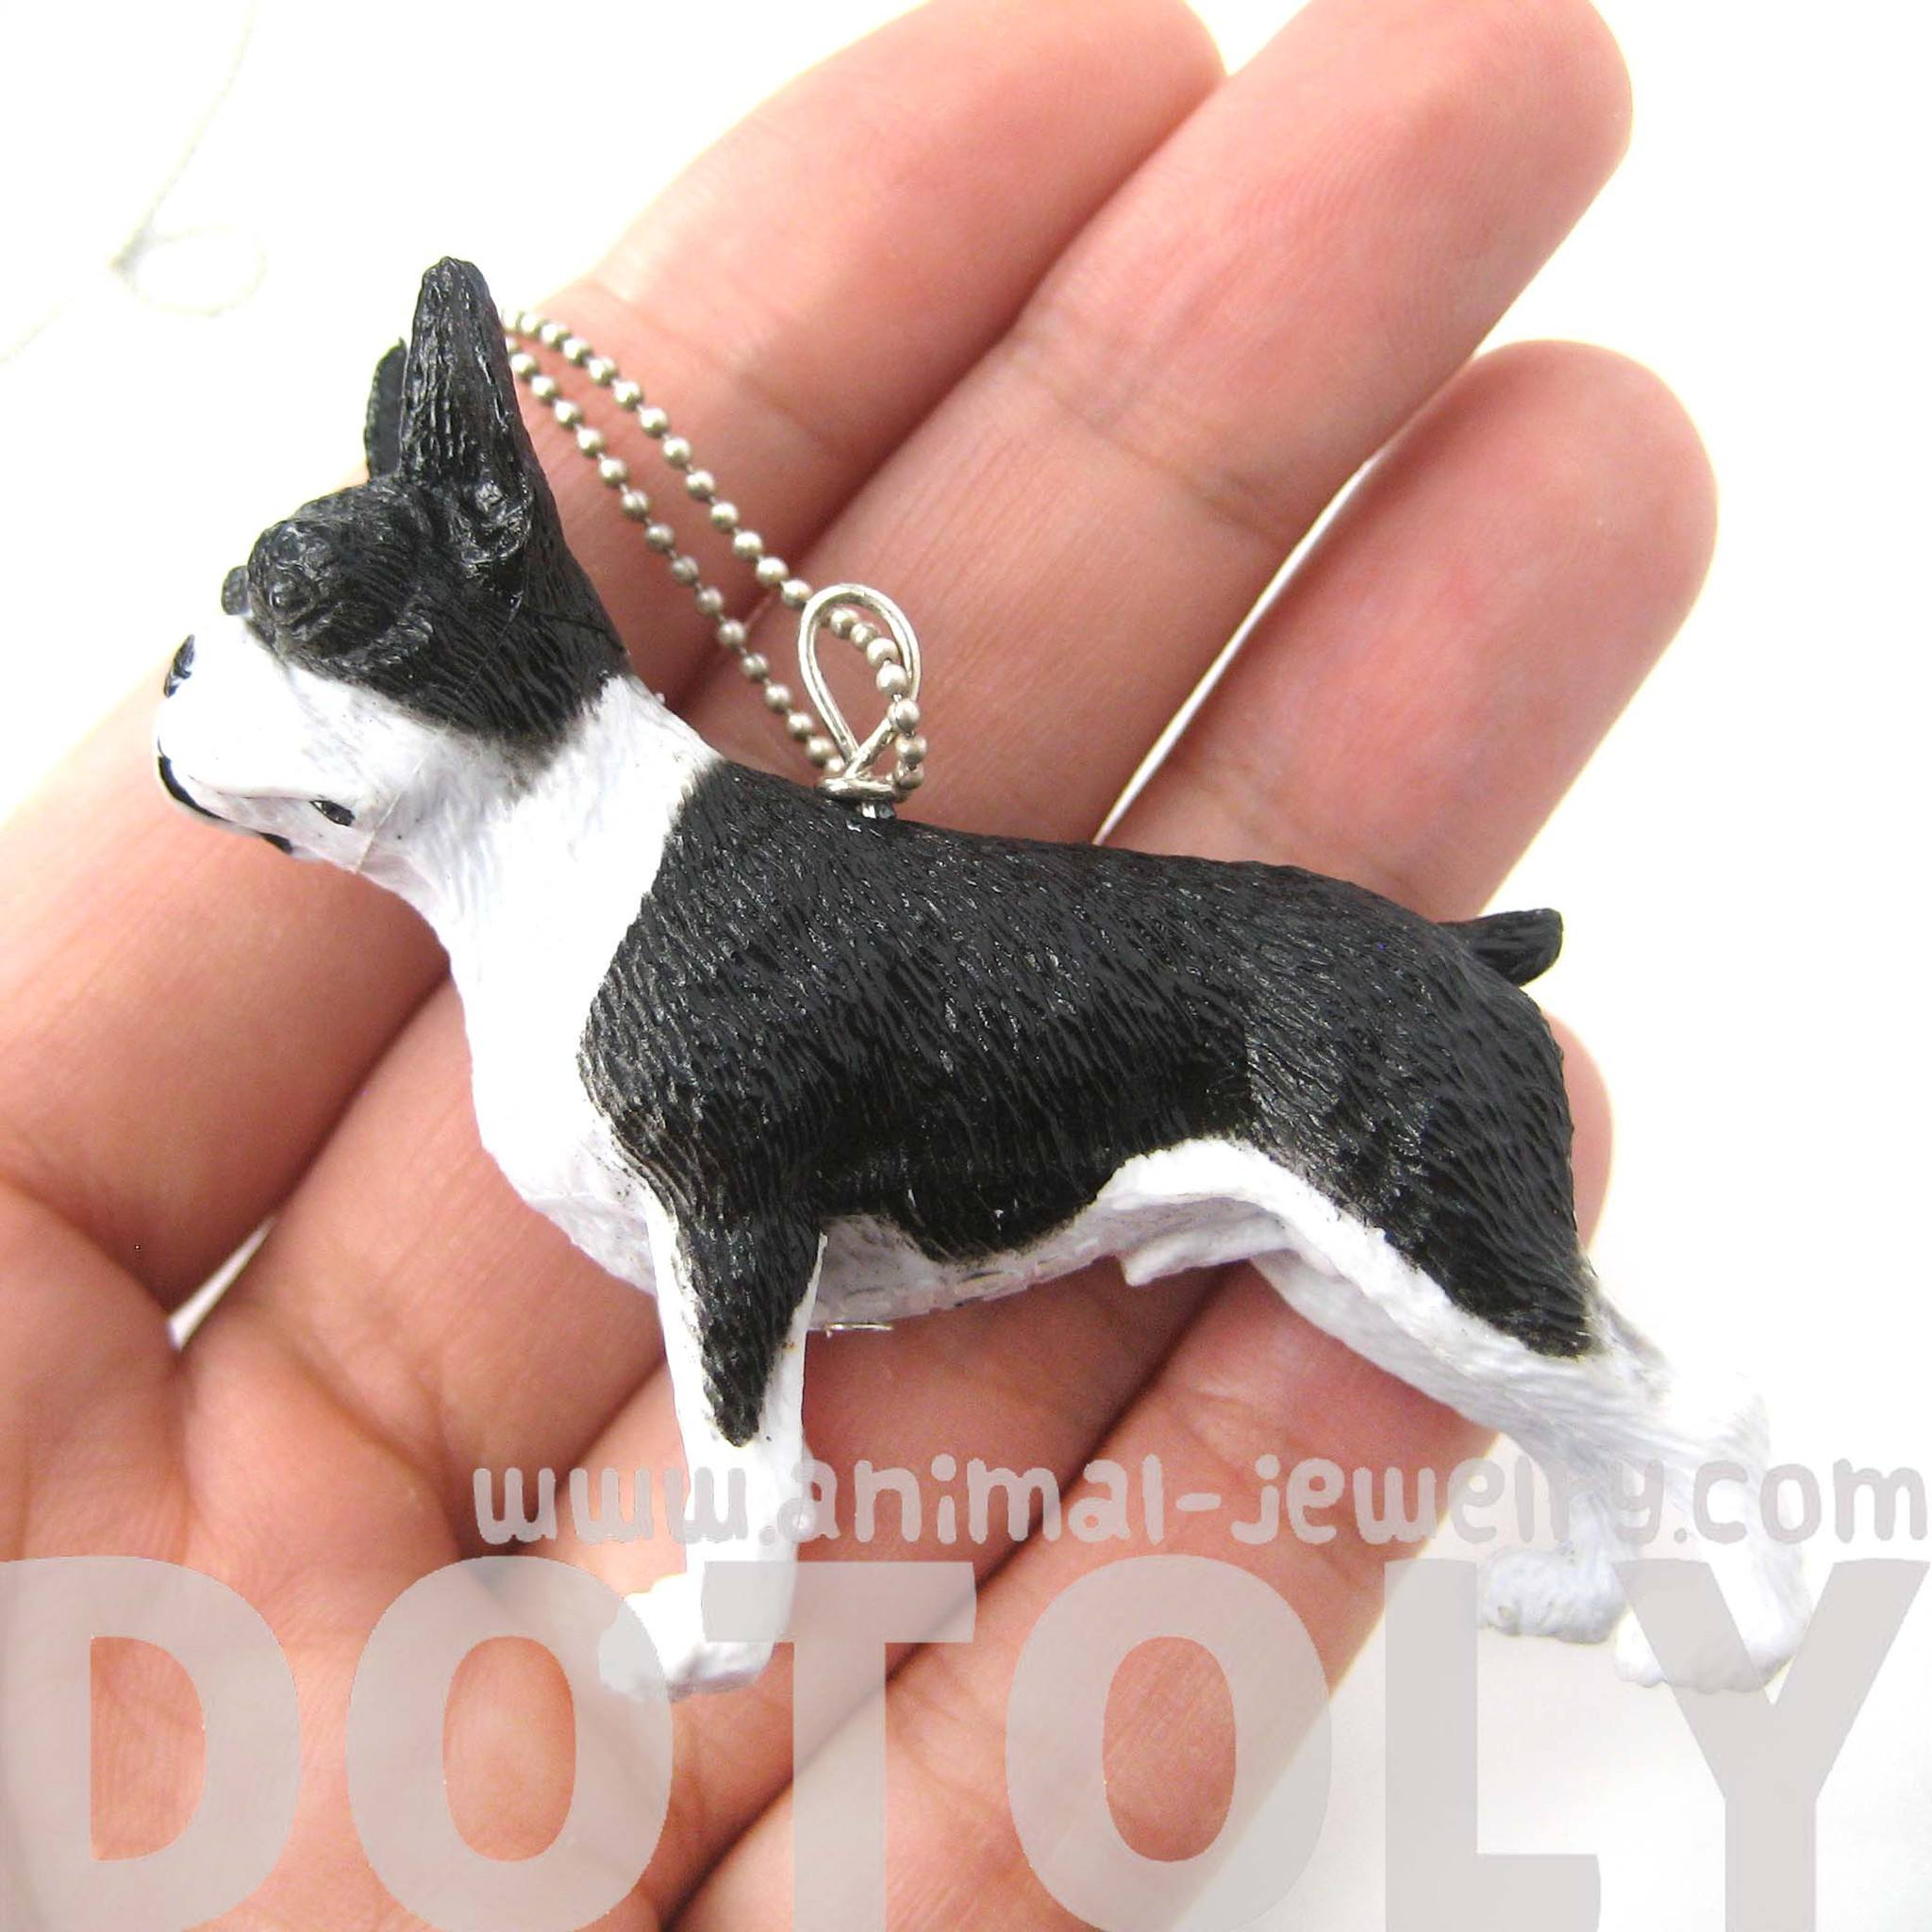 boston-terrier-puppy-dog-animal-plastic-pendant-necklace-animal-jewelry